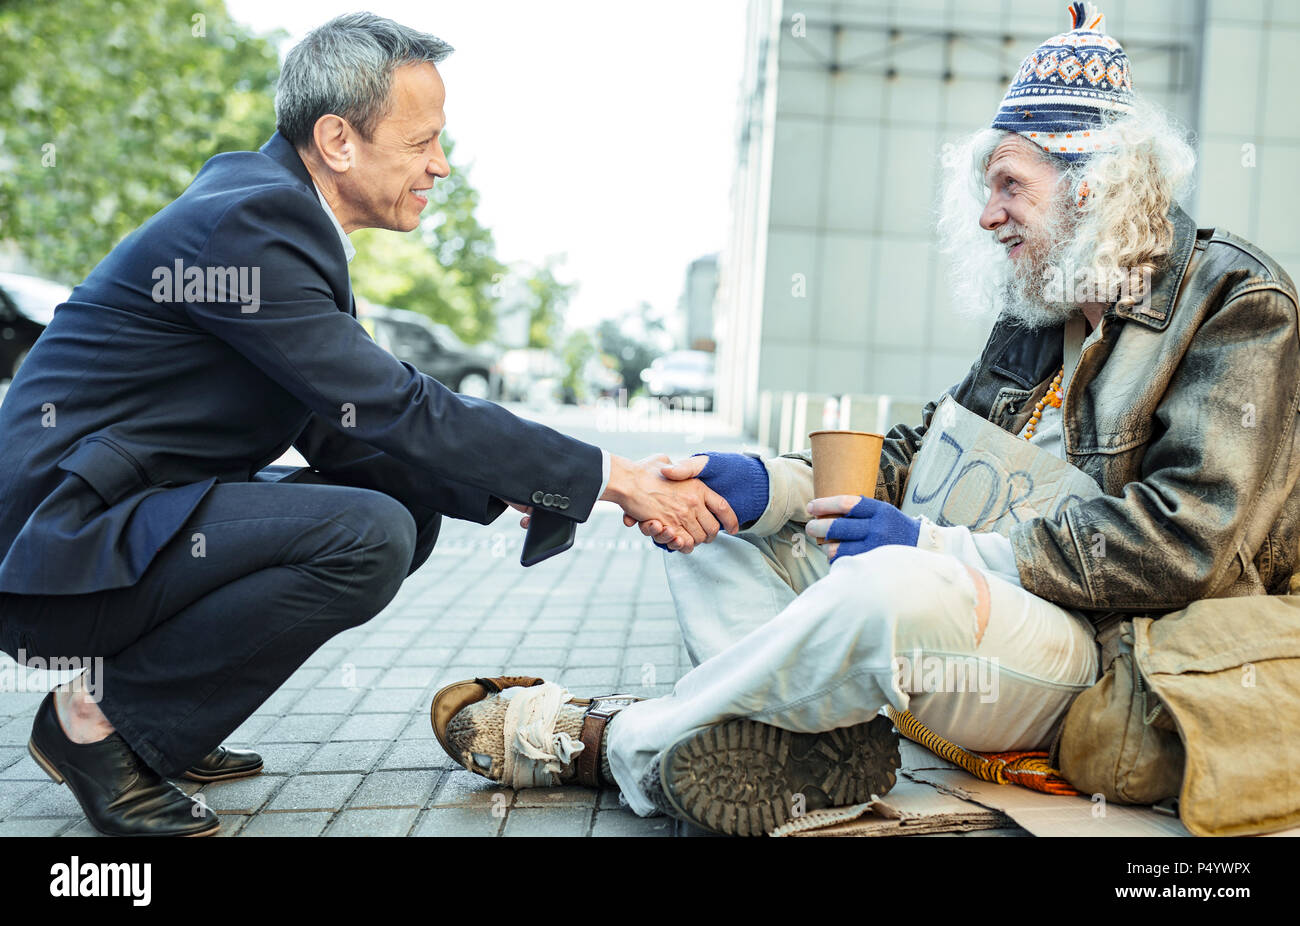 Smiling kind businessman shaking hand of starving man - Stock Image